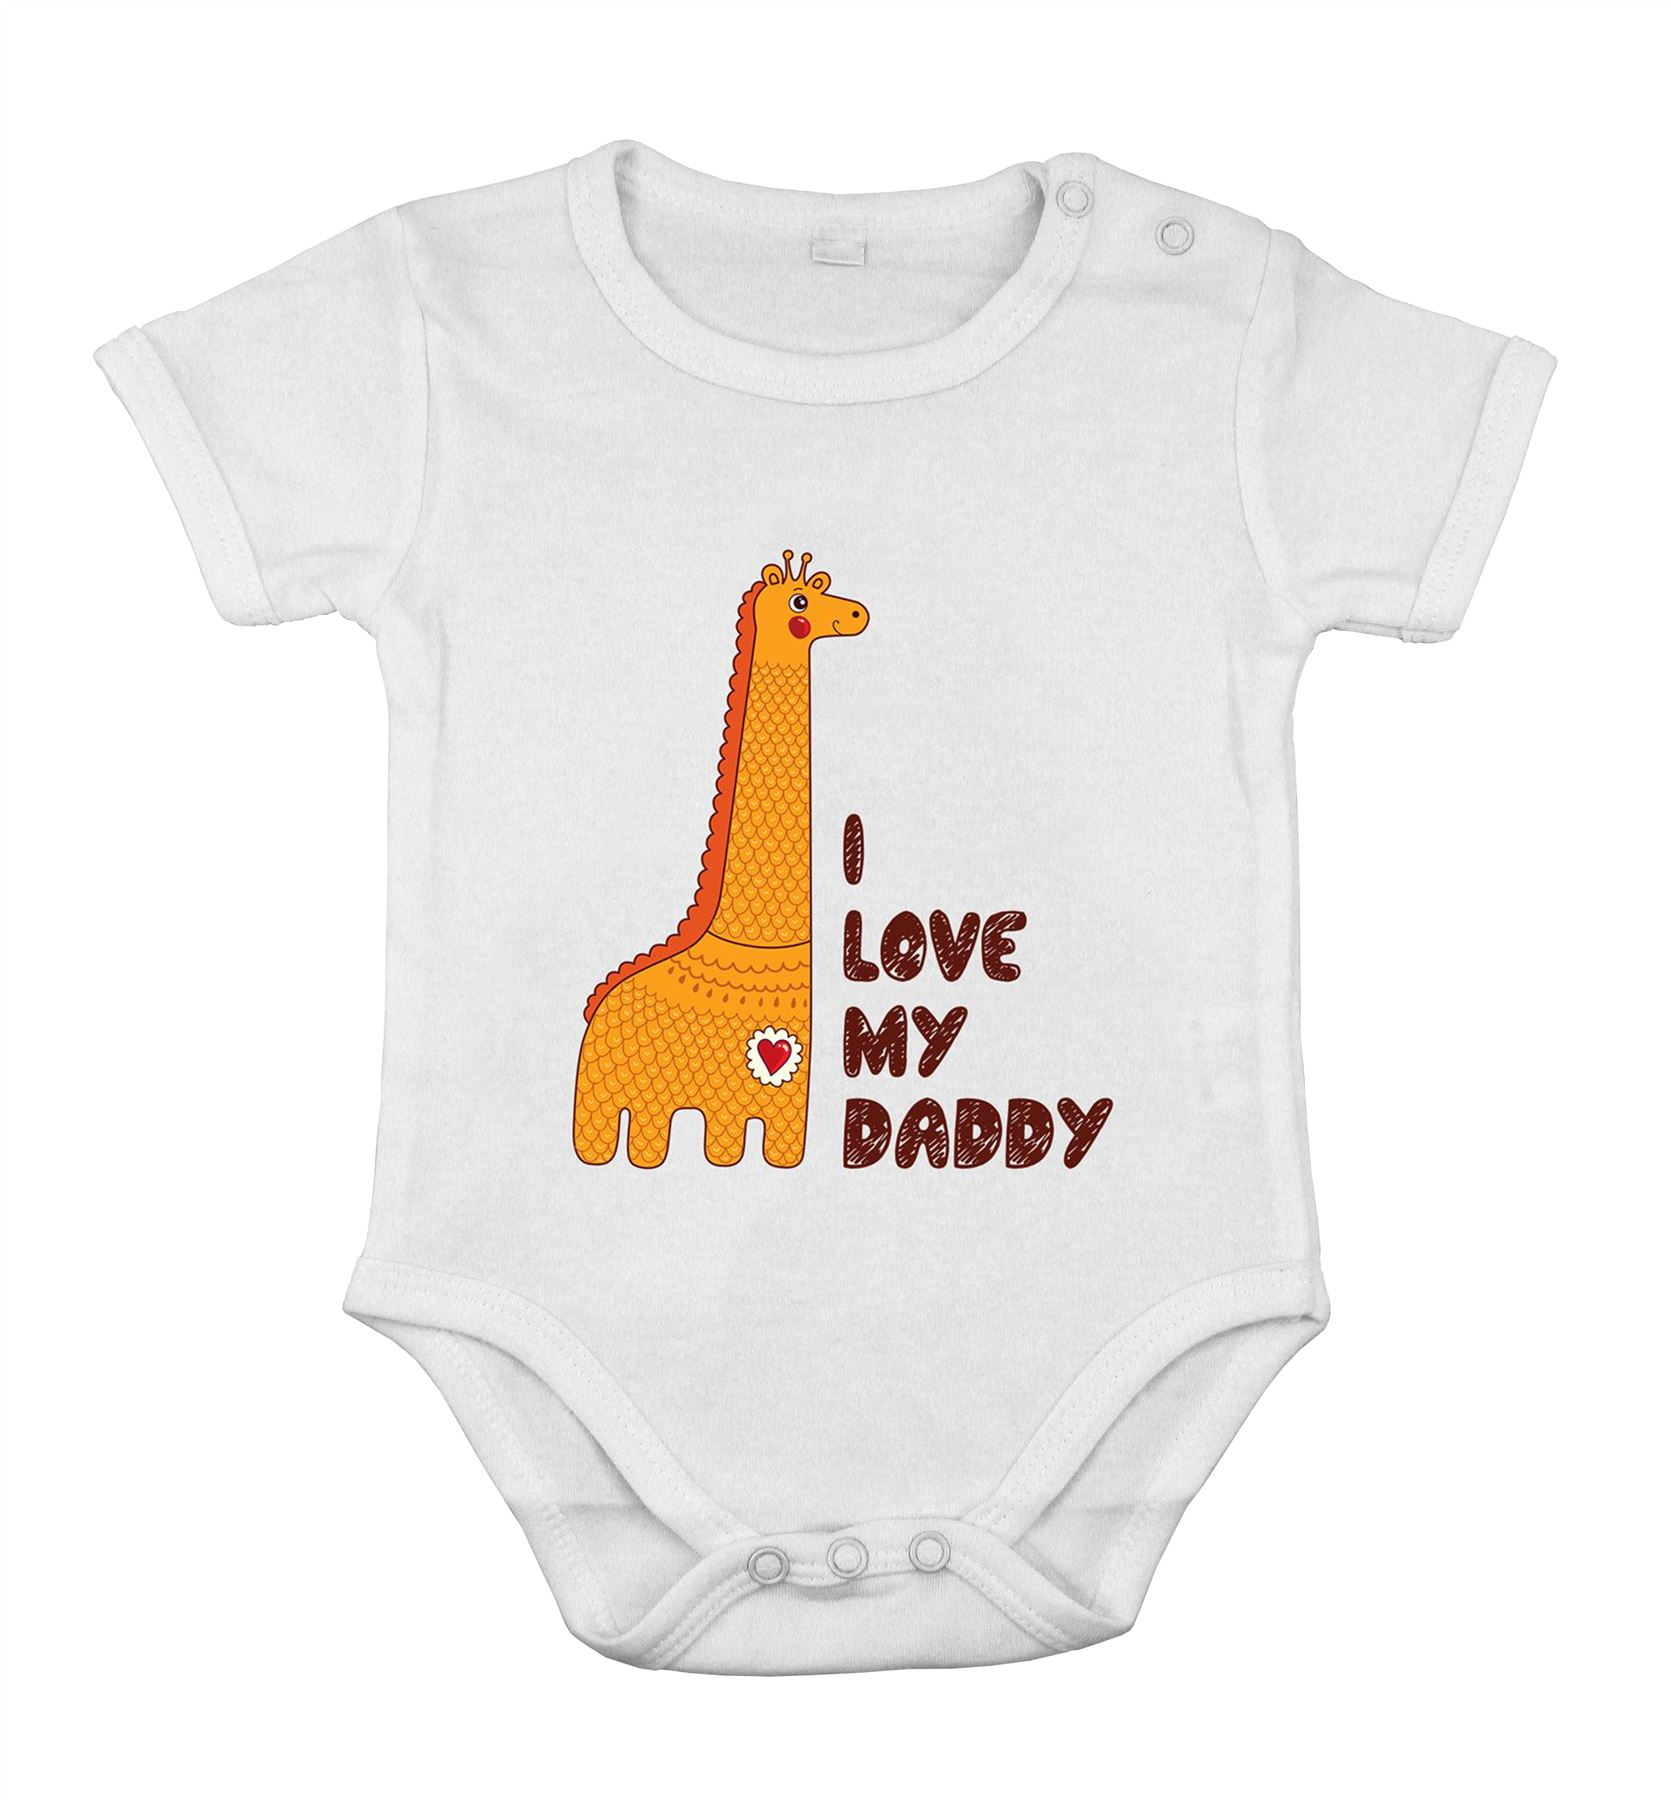 I love My Daddy safari giraf Funny Cute Baby Newborn short e piece